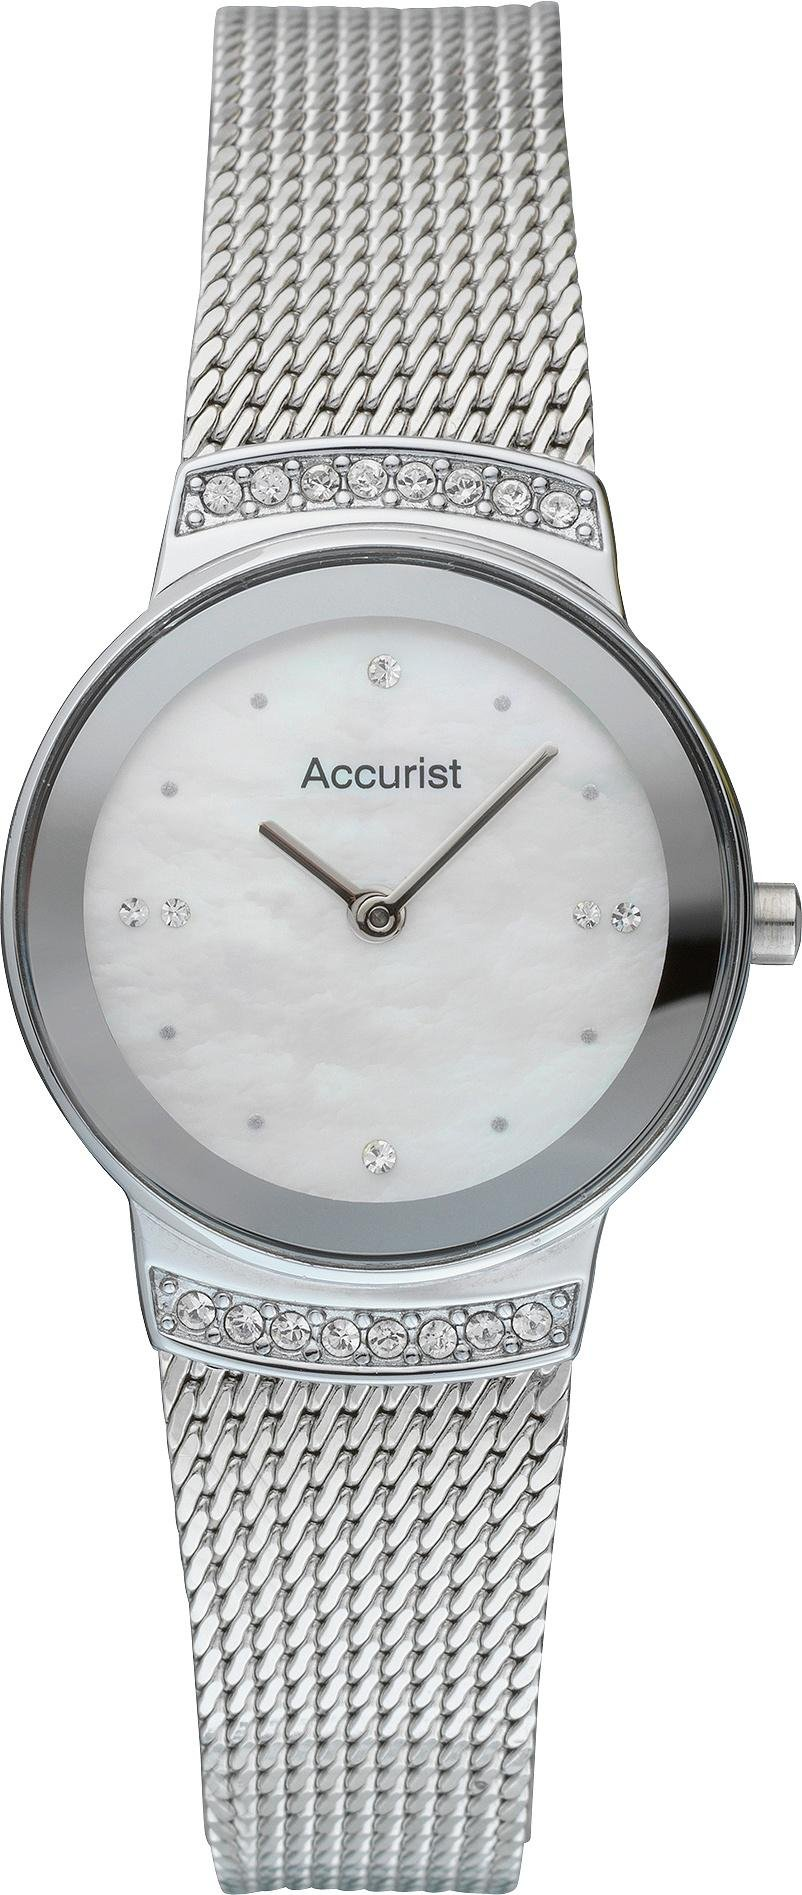 Image of Accurist - Ladies Silver Plated Mesh Strap - Watch